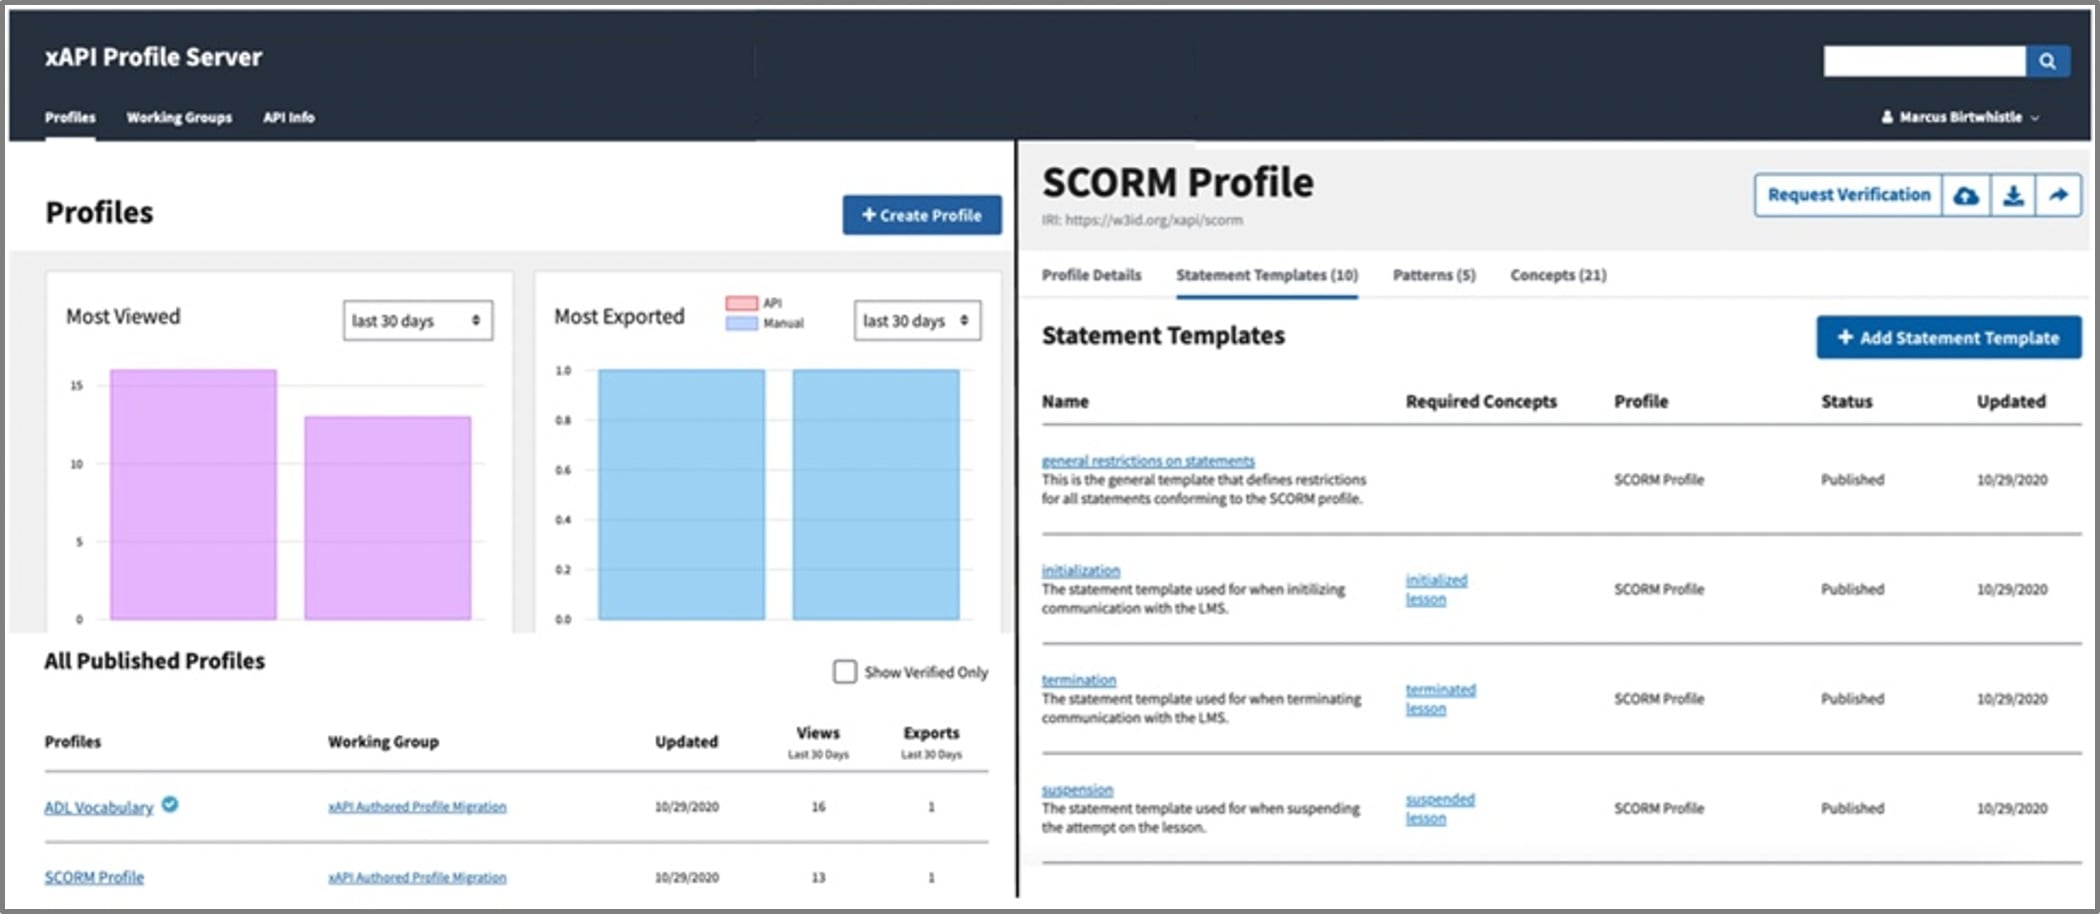 Screenshot of xAPI Profile Server showing profiles and SCORM Profile